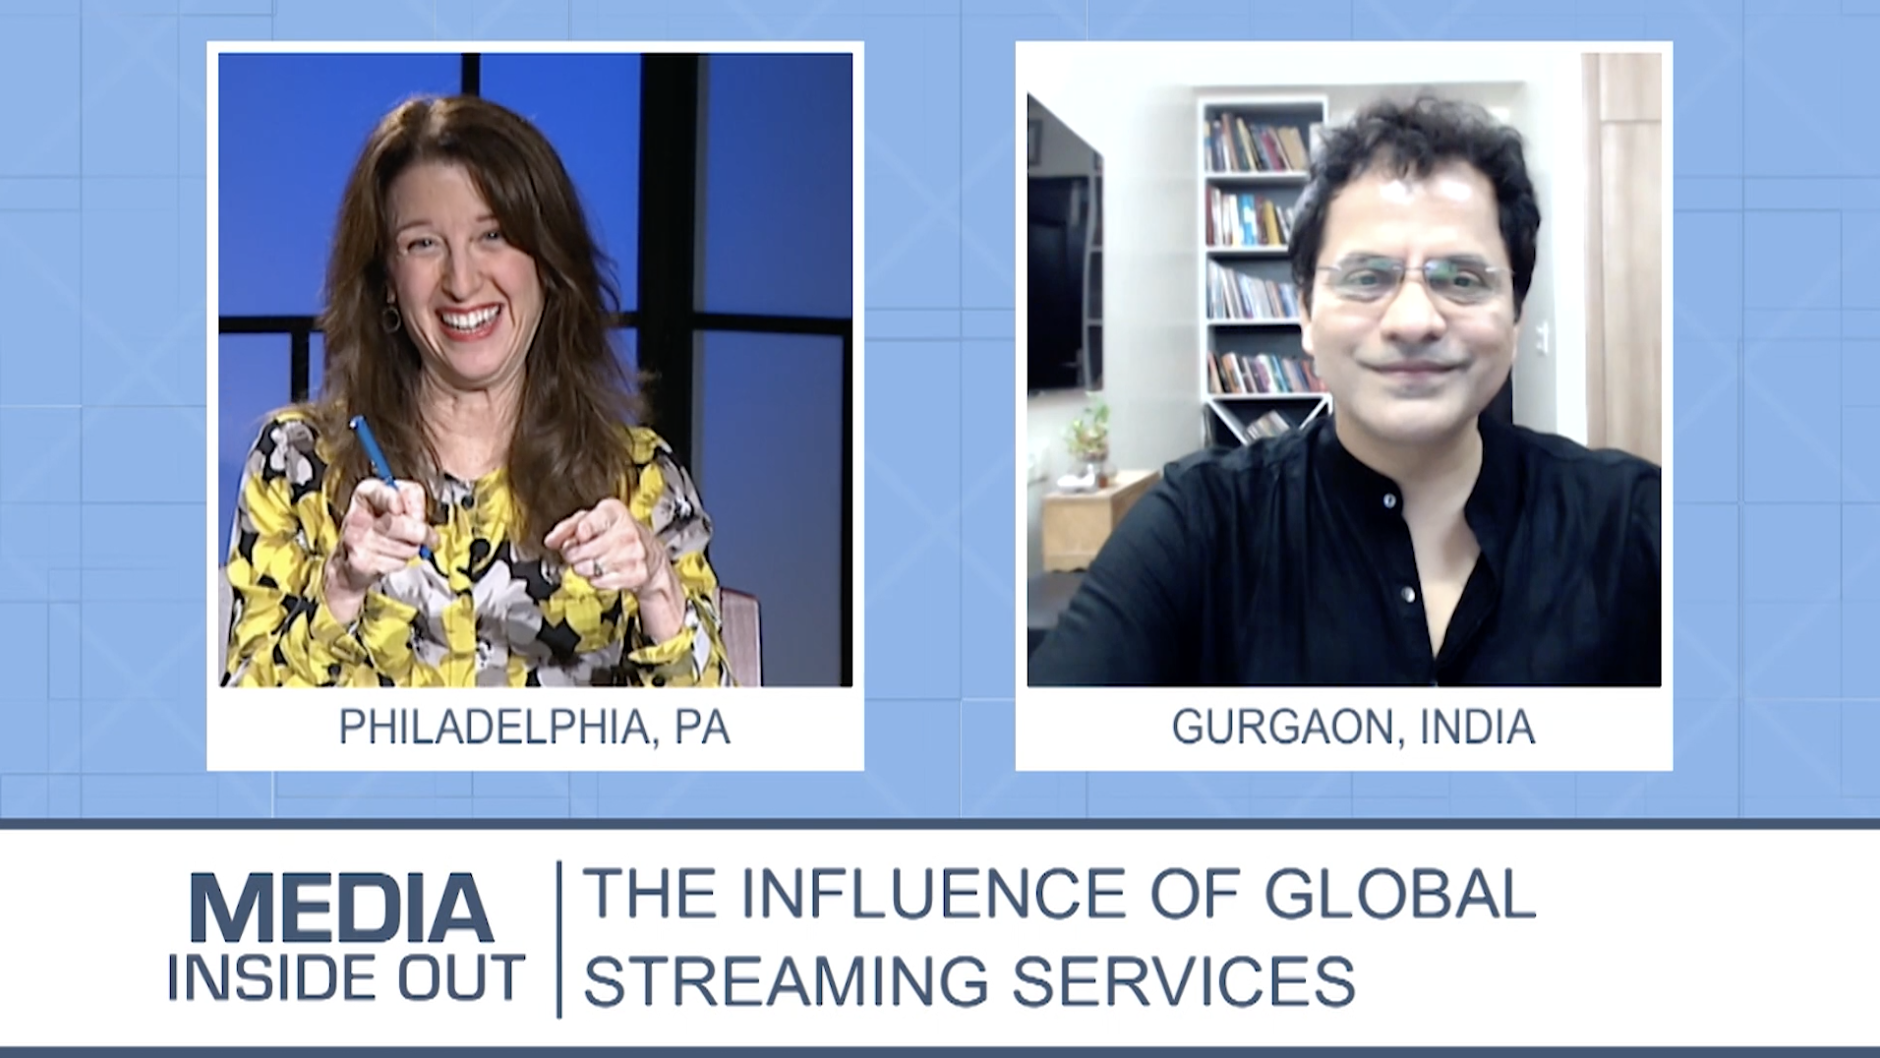 Media Inside Out-Global Streaming